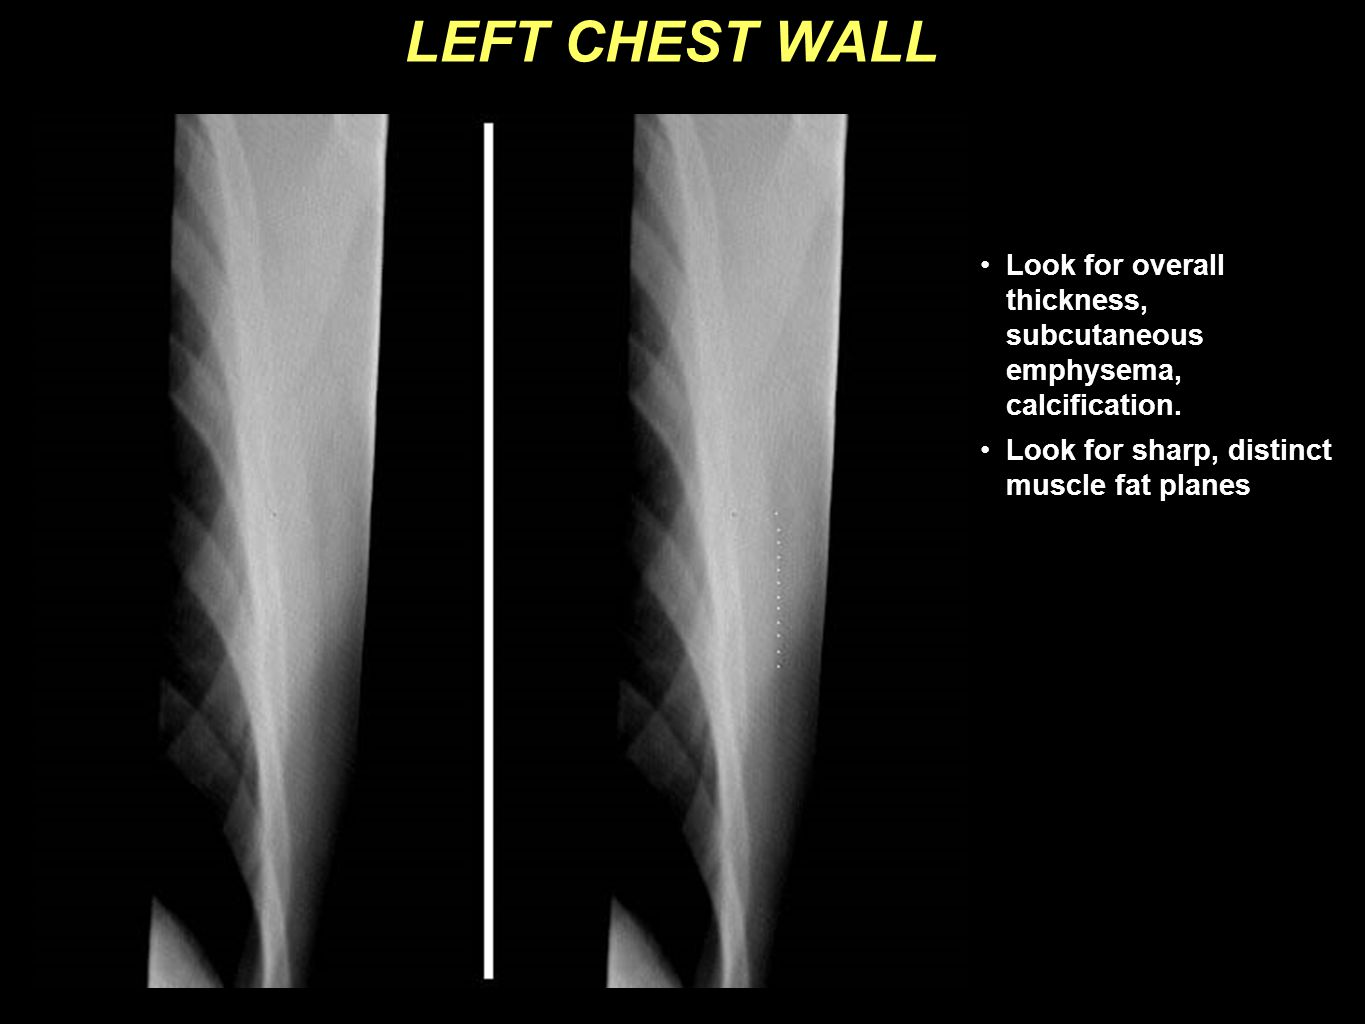 LEFT CHEST WALL Look for overall thickness, subcutaneous emphysema, calcification.